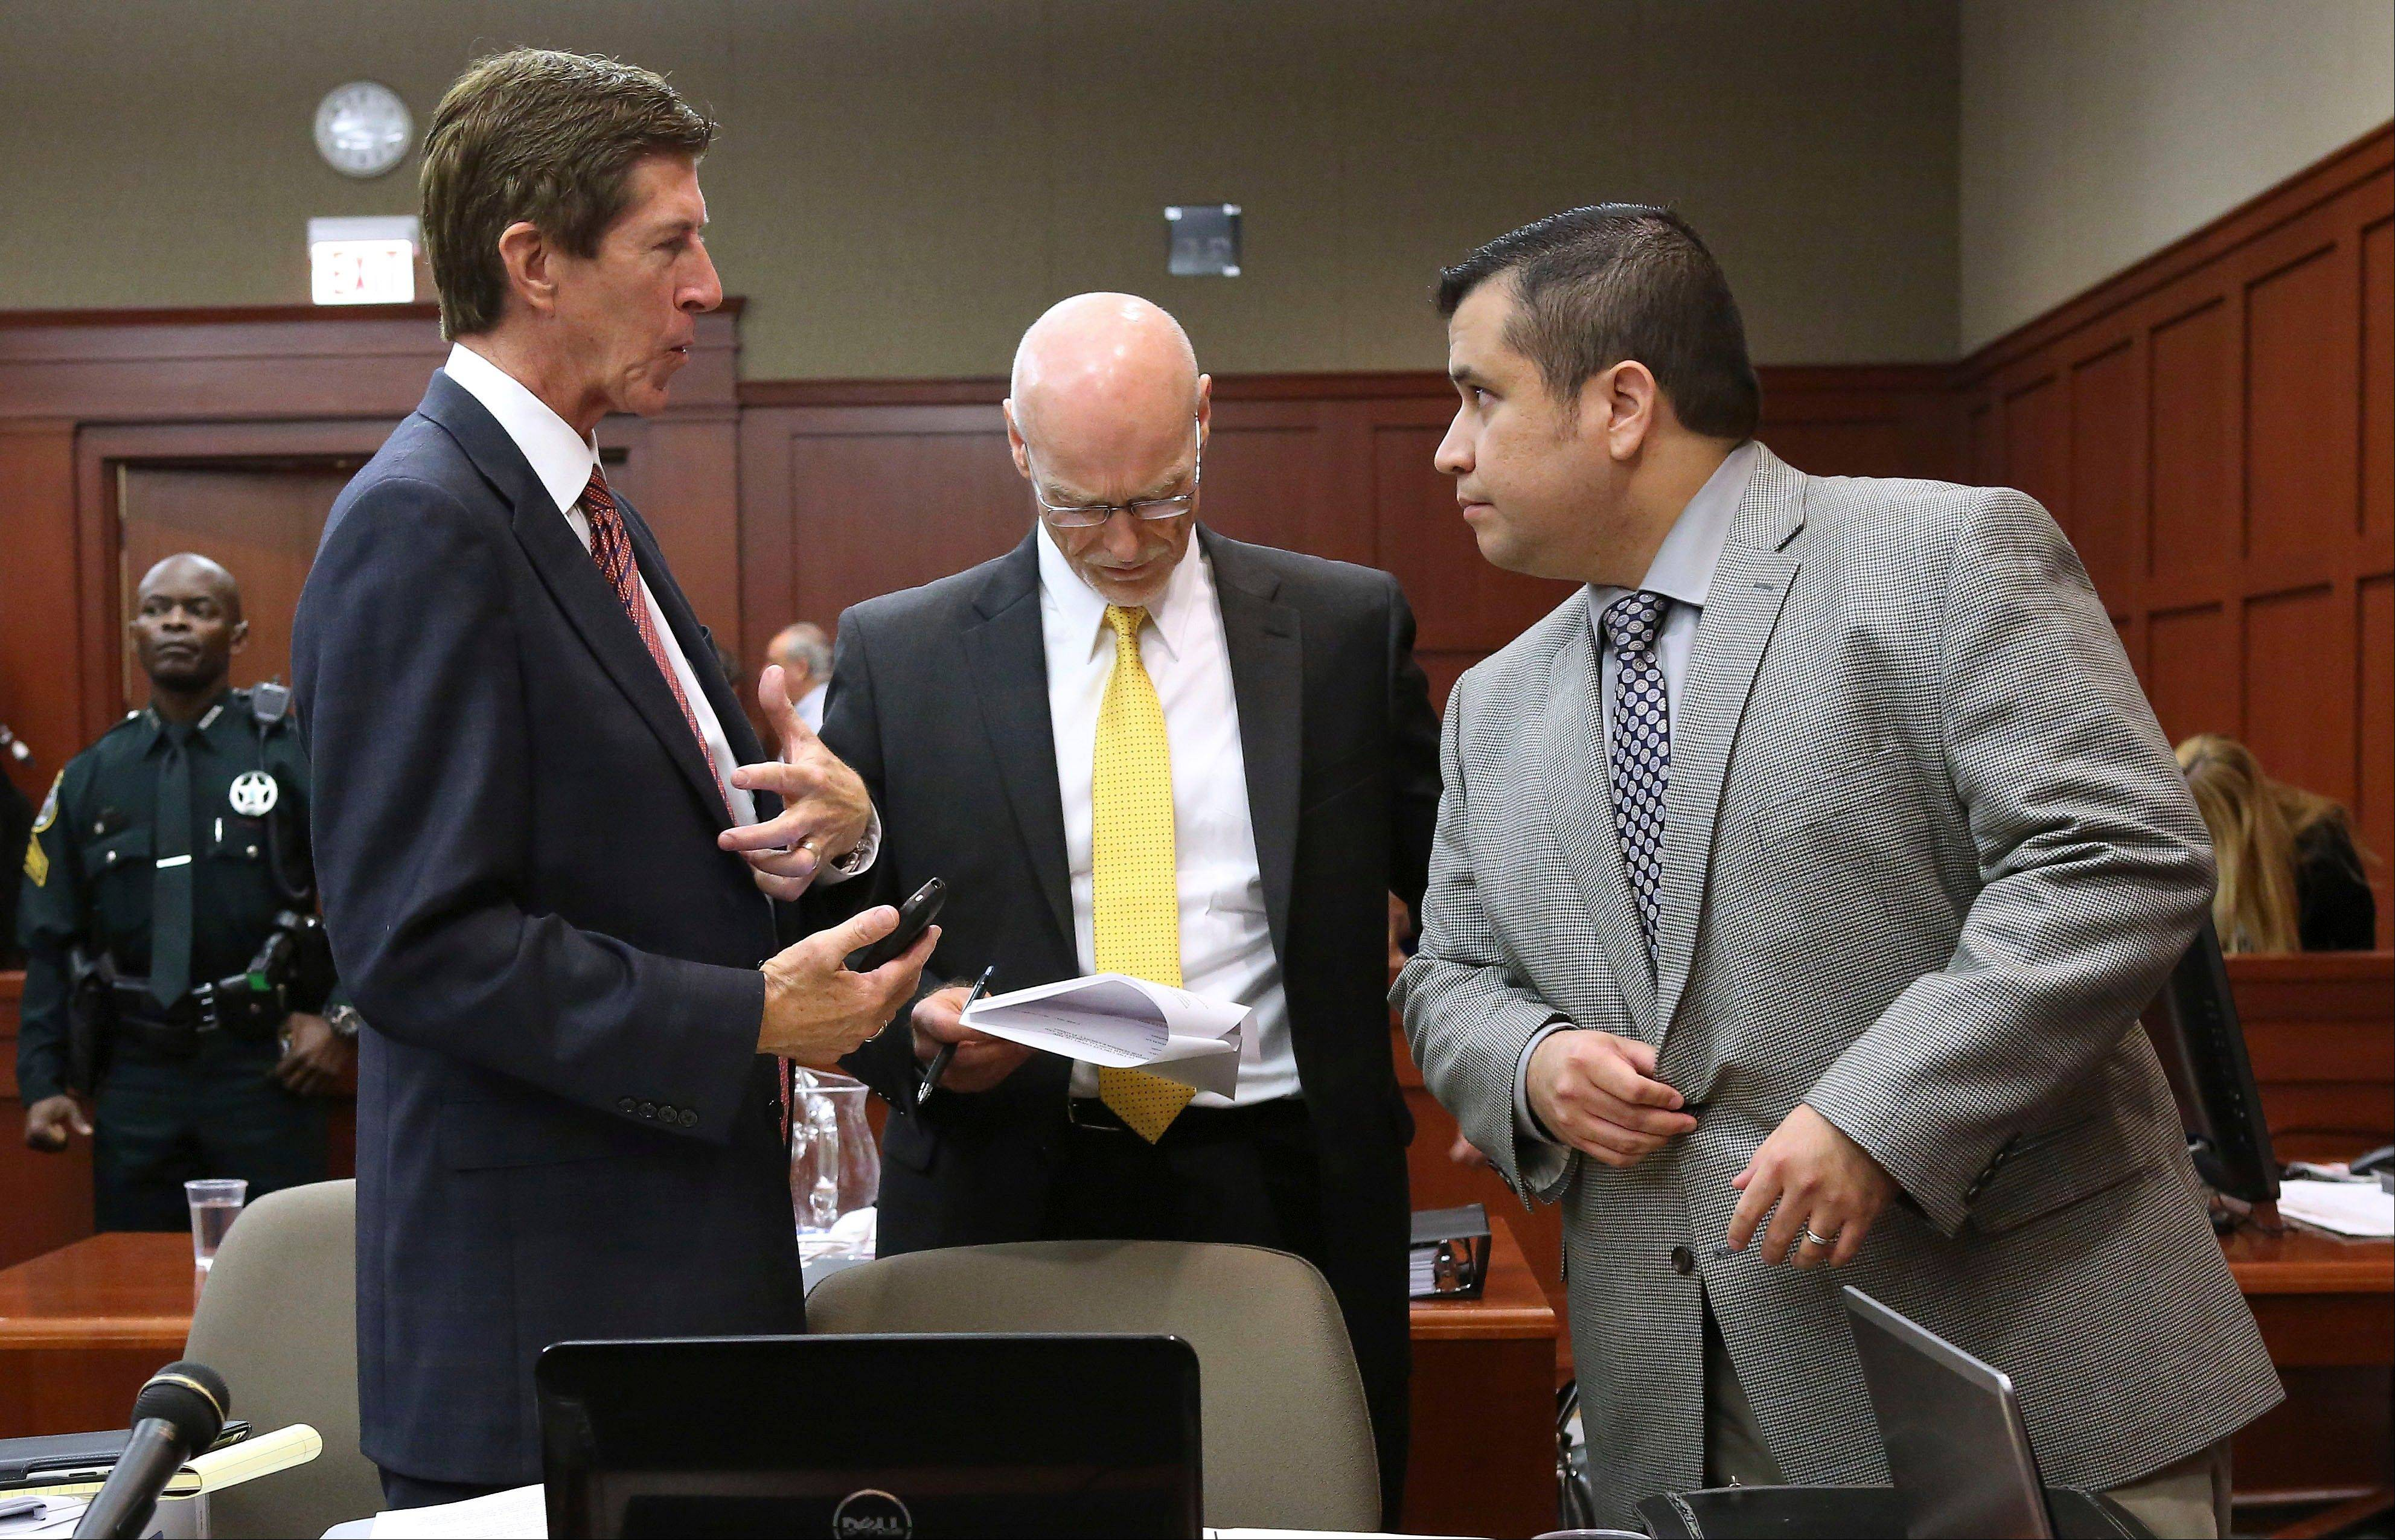 George Zimmerman, right, talks with his attorneys Mark O'Mara, left, and Don West, center, during a recess on the 17th day of Zimmerman's trial in Seminole circuit court, Tuesday, July 2, 2013 in Sanford, Fla. Zimmerman has been charged with second-degree murder for the 2012 shooting death of Trayvon Martin.